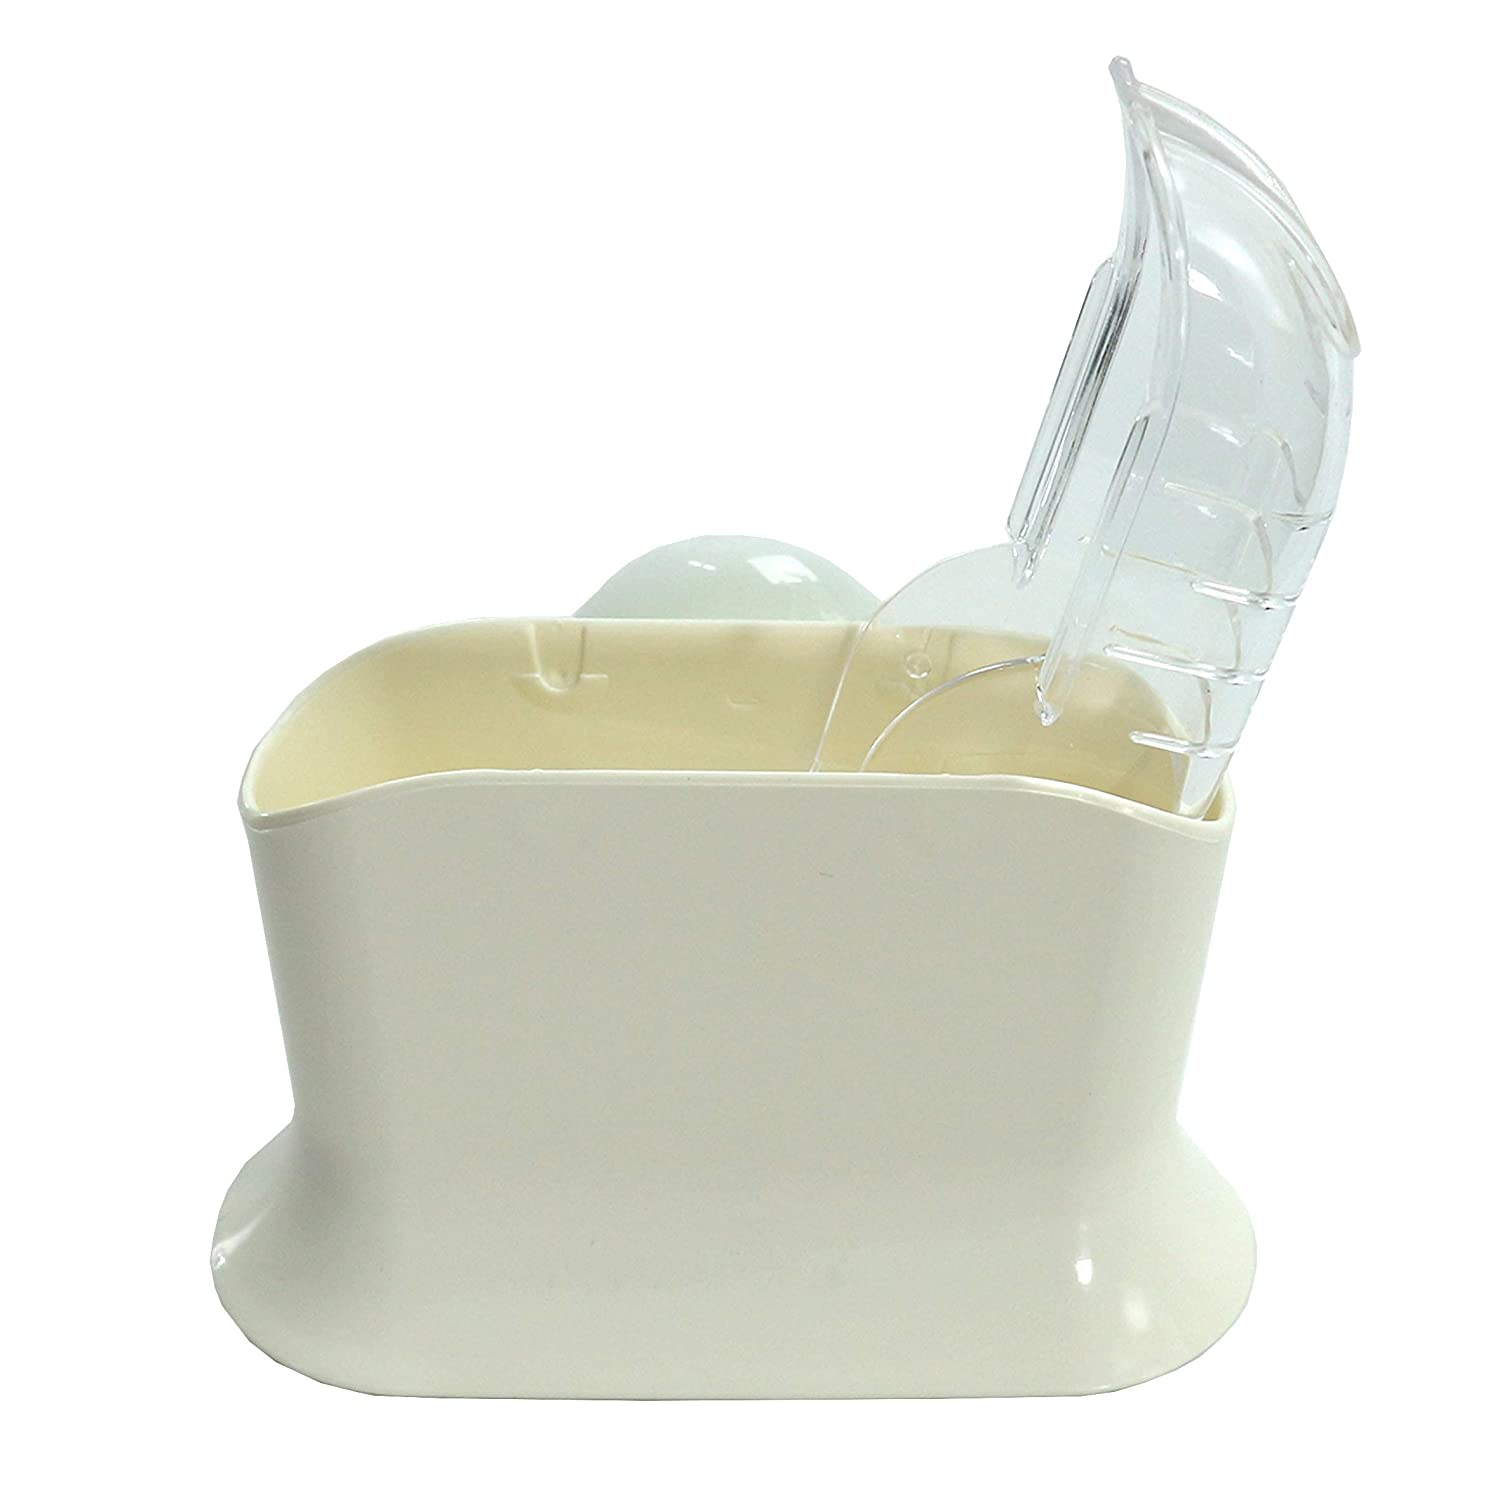 Sanada Rice Paddle Rest With Suction Cup Rice Scooper Holder White